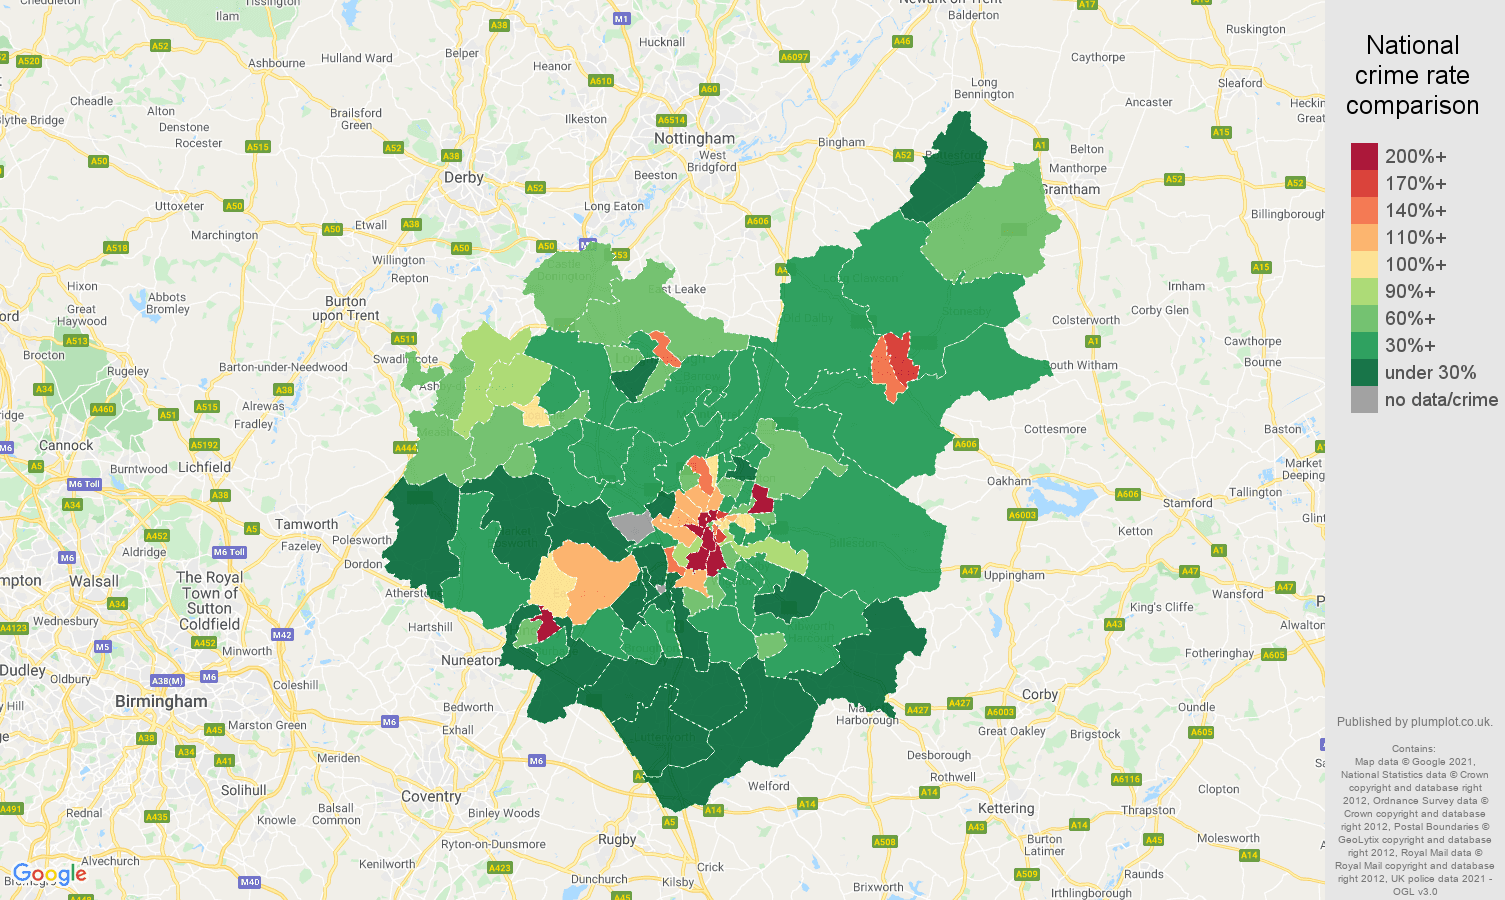 Leicestershire drugs crime rate comparison map